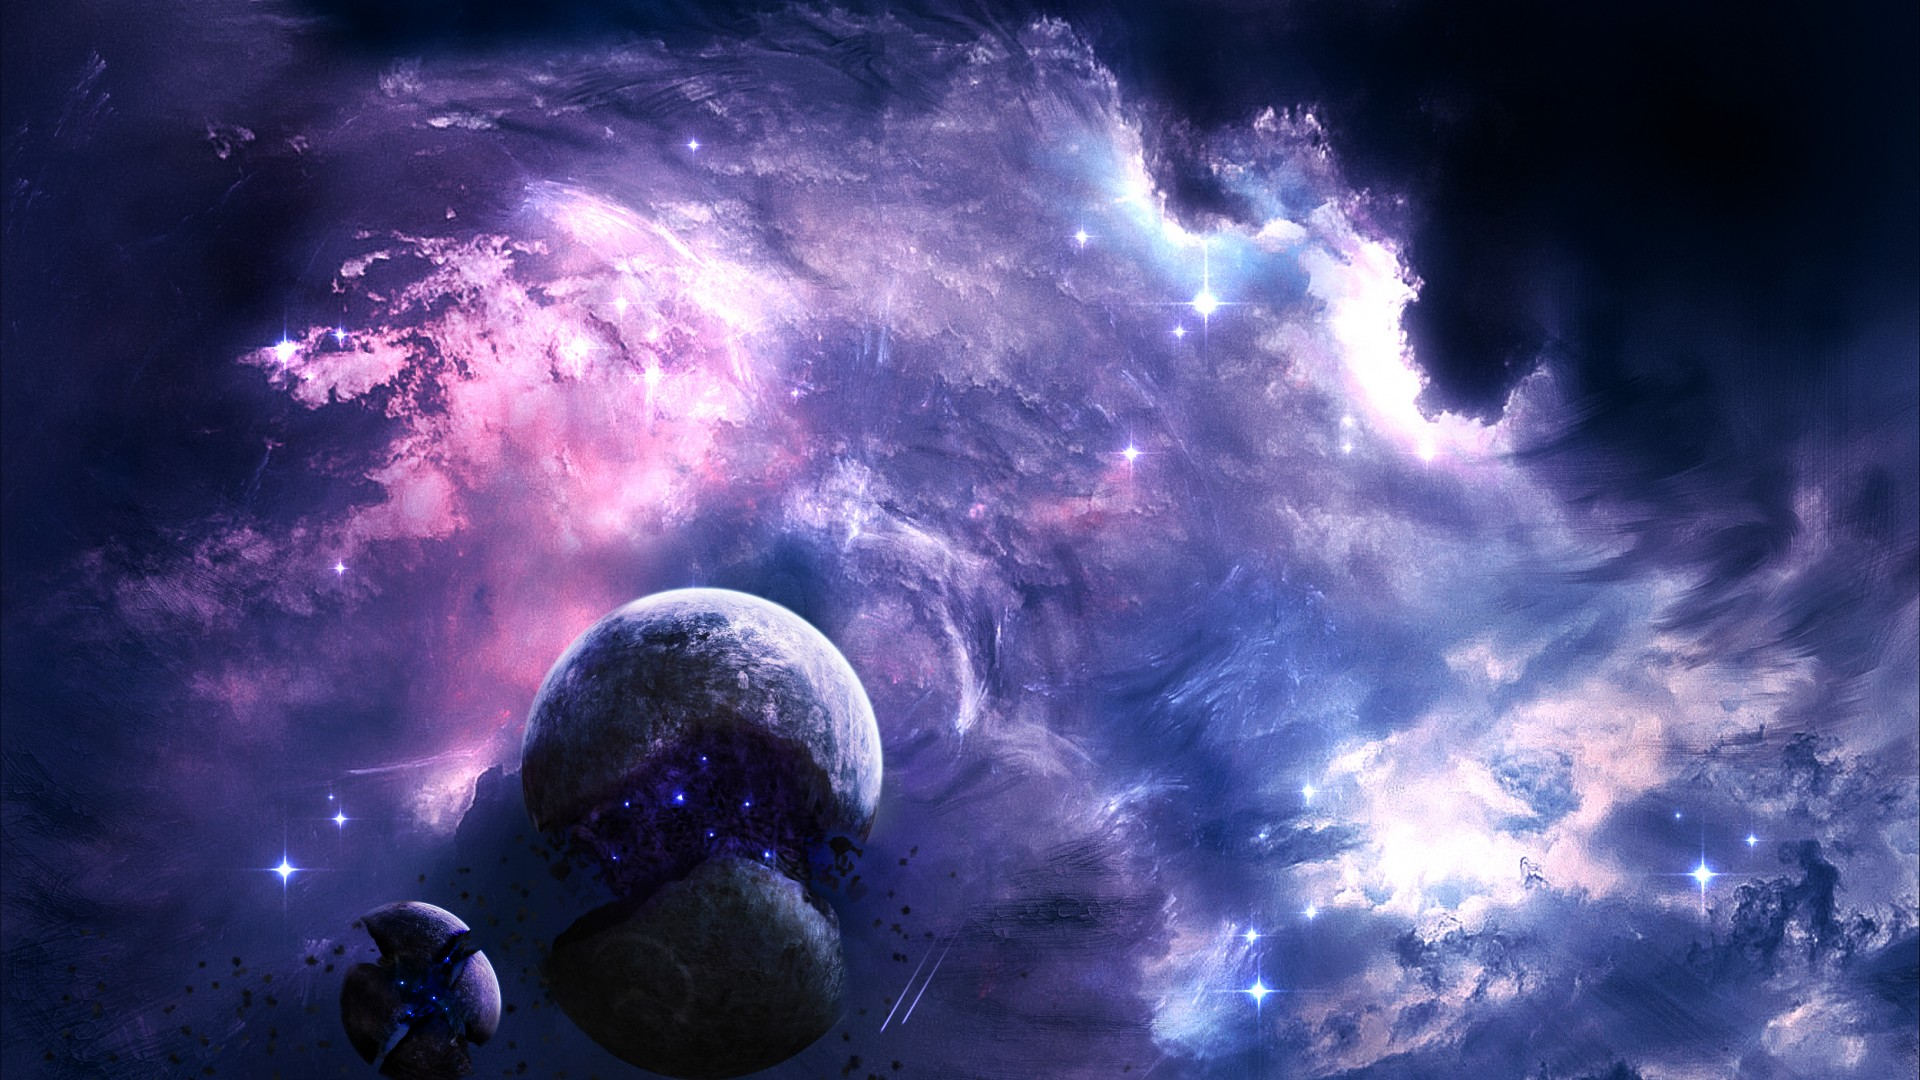 ... space wallpapers 11 ...